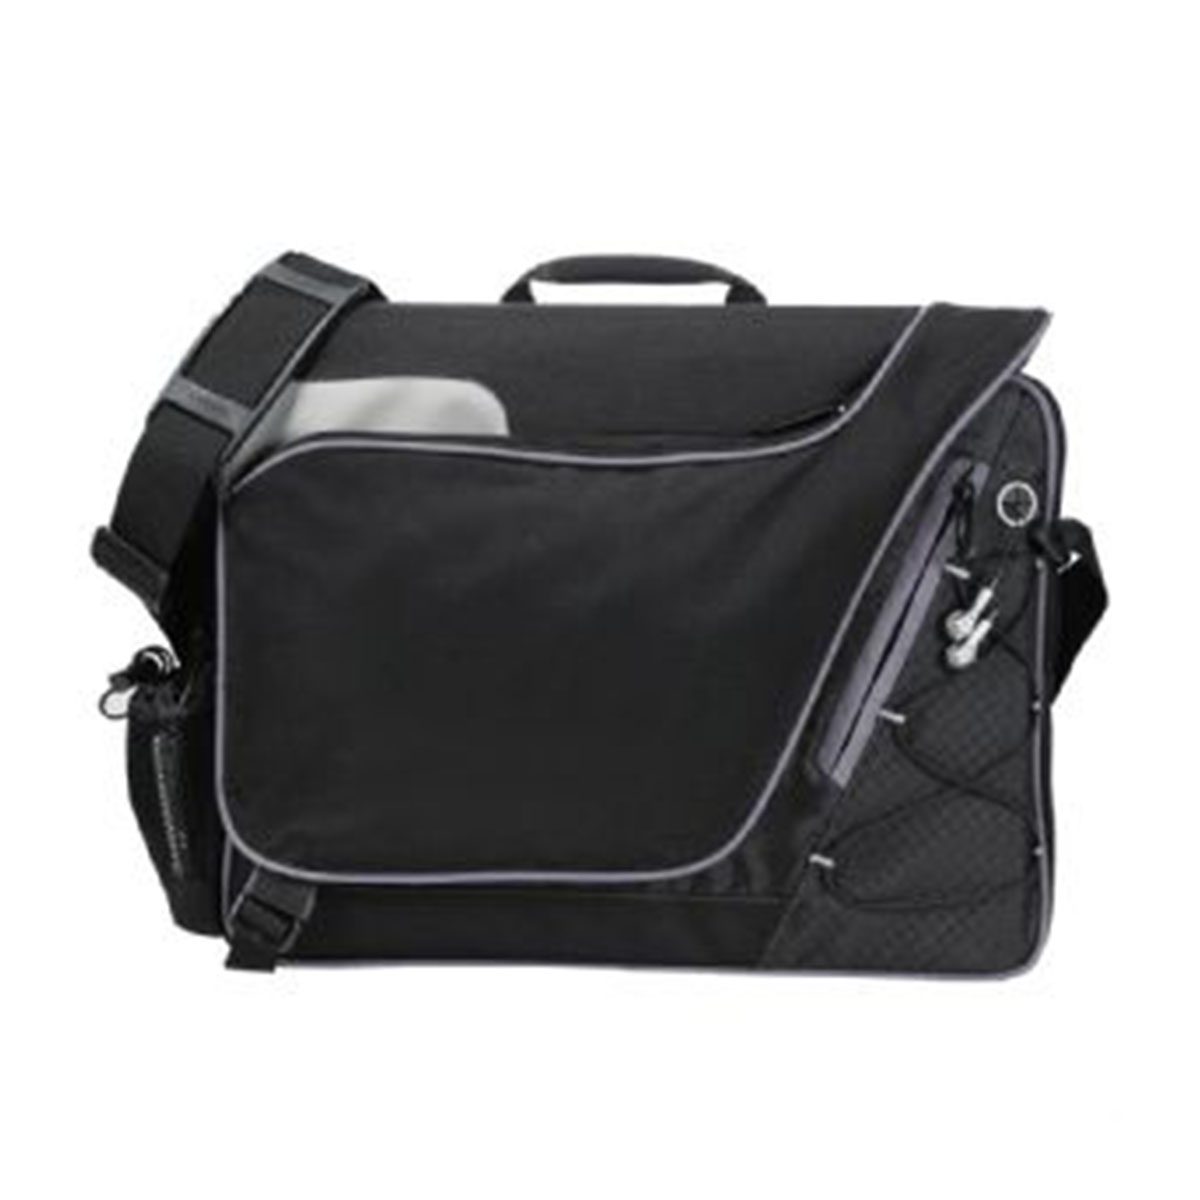 Summit Checkpoint-Friendly Compu-Case-Black with silver trim.